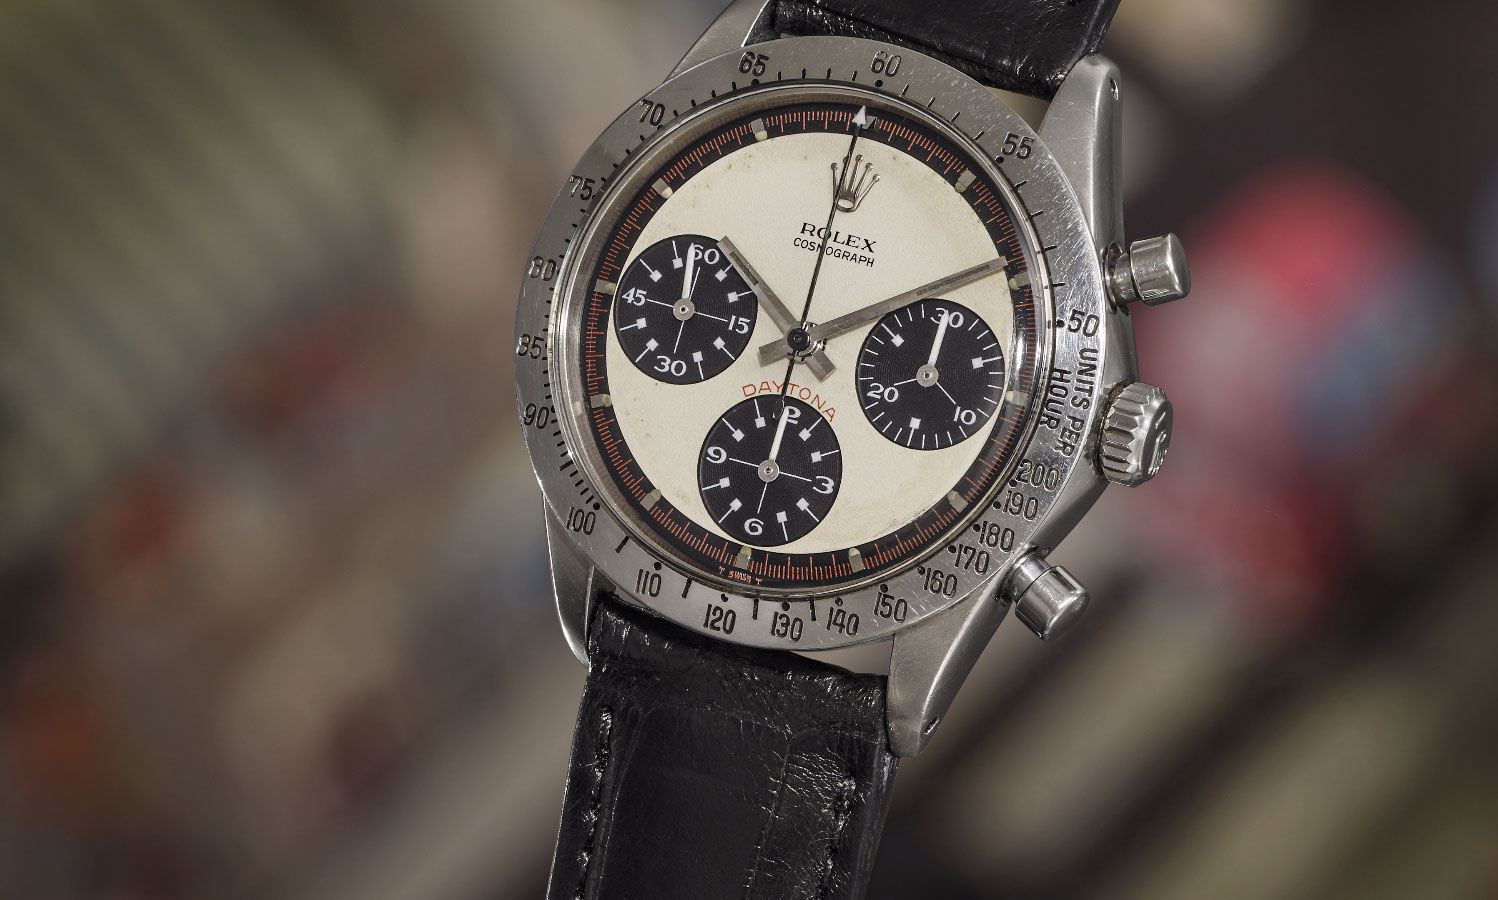 Paul Newman's 1968 Rolex Cosmograph Daytona watch face